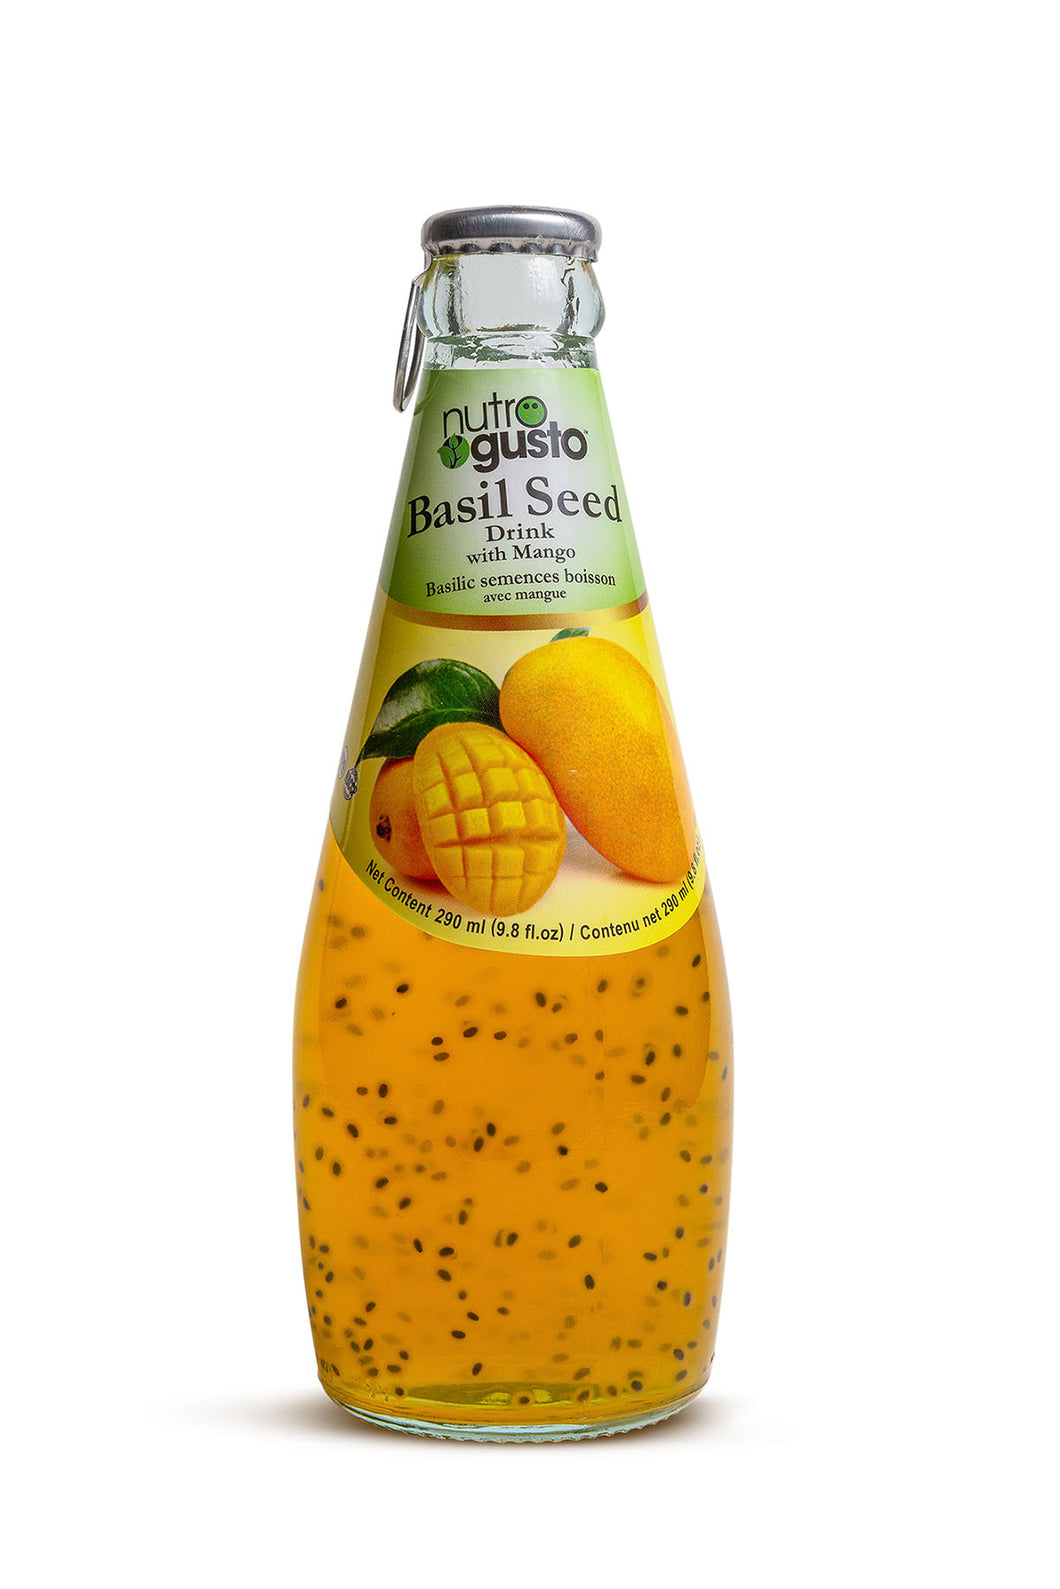 NutroGusto Basil Seed Drink with Mango 290ml